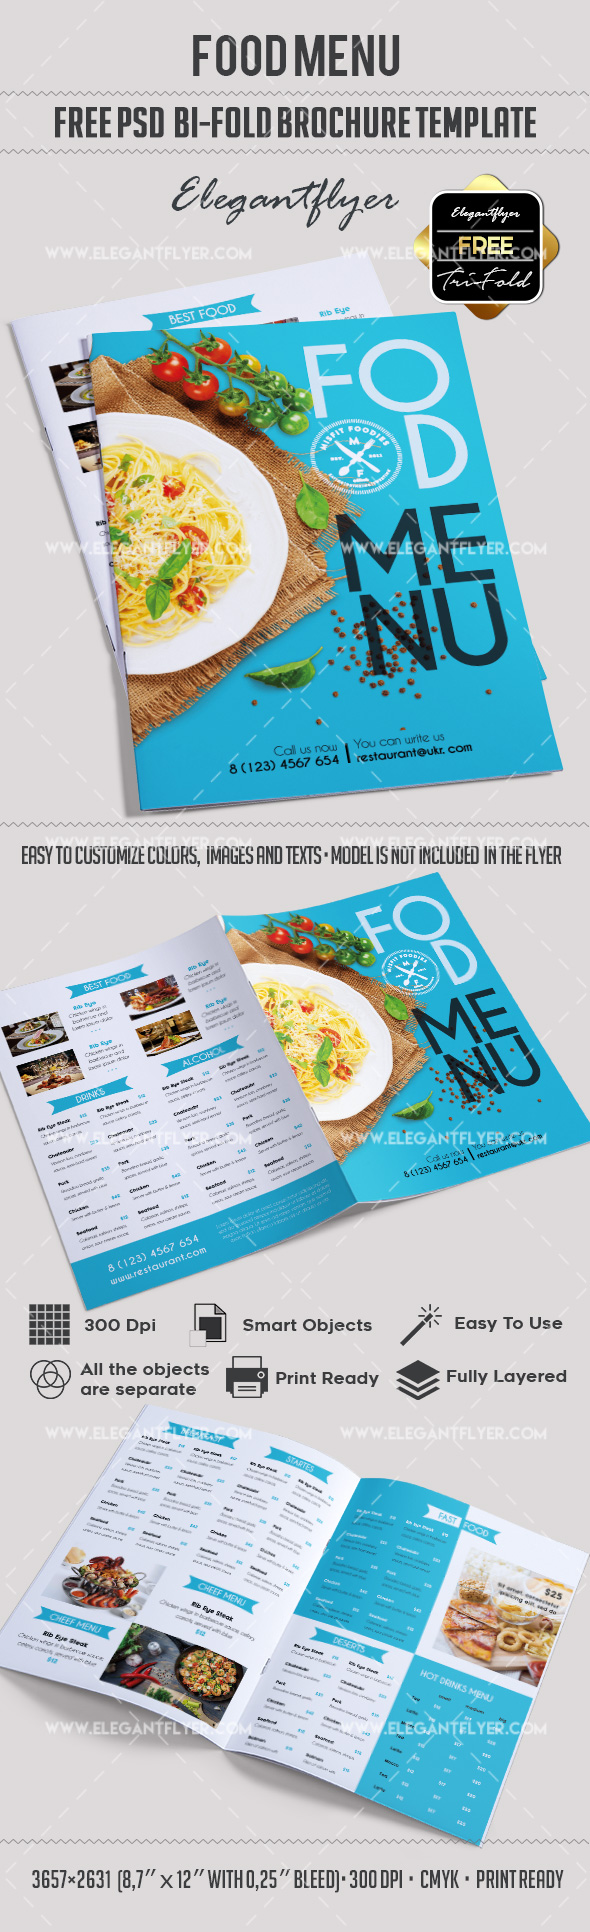 Free bi fold cafe menu psd brochure by elegantflyer for Free psd brochure template